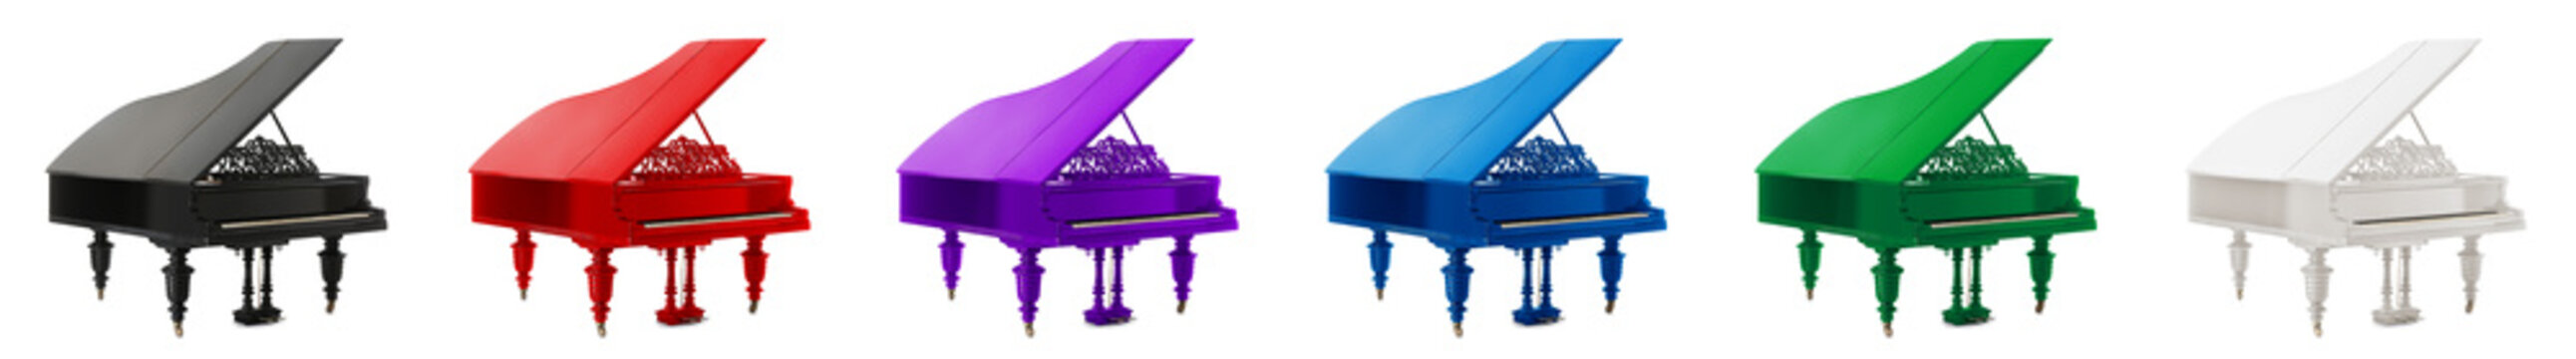 Different grand pianos on white background